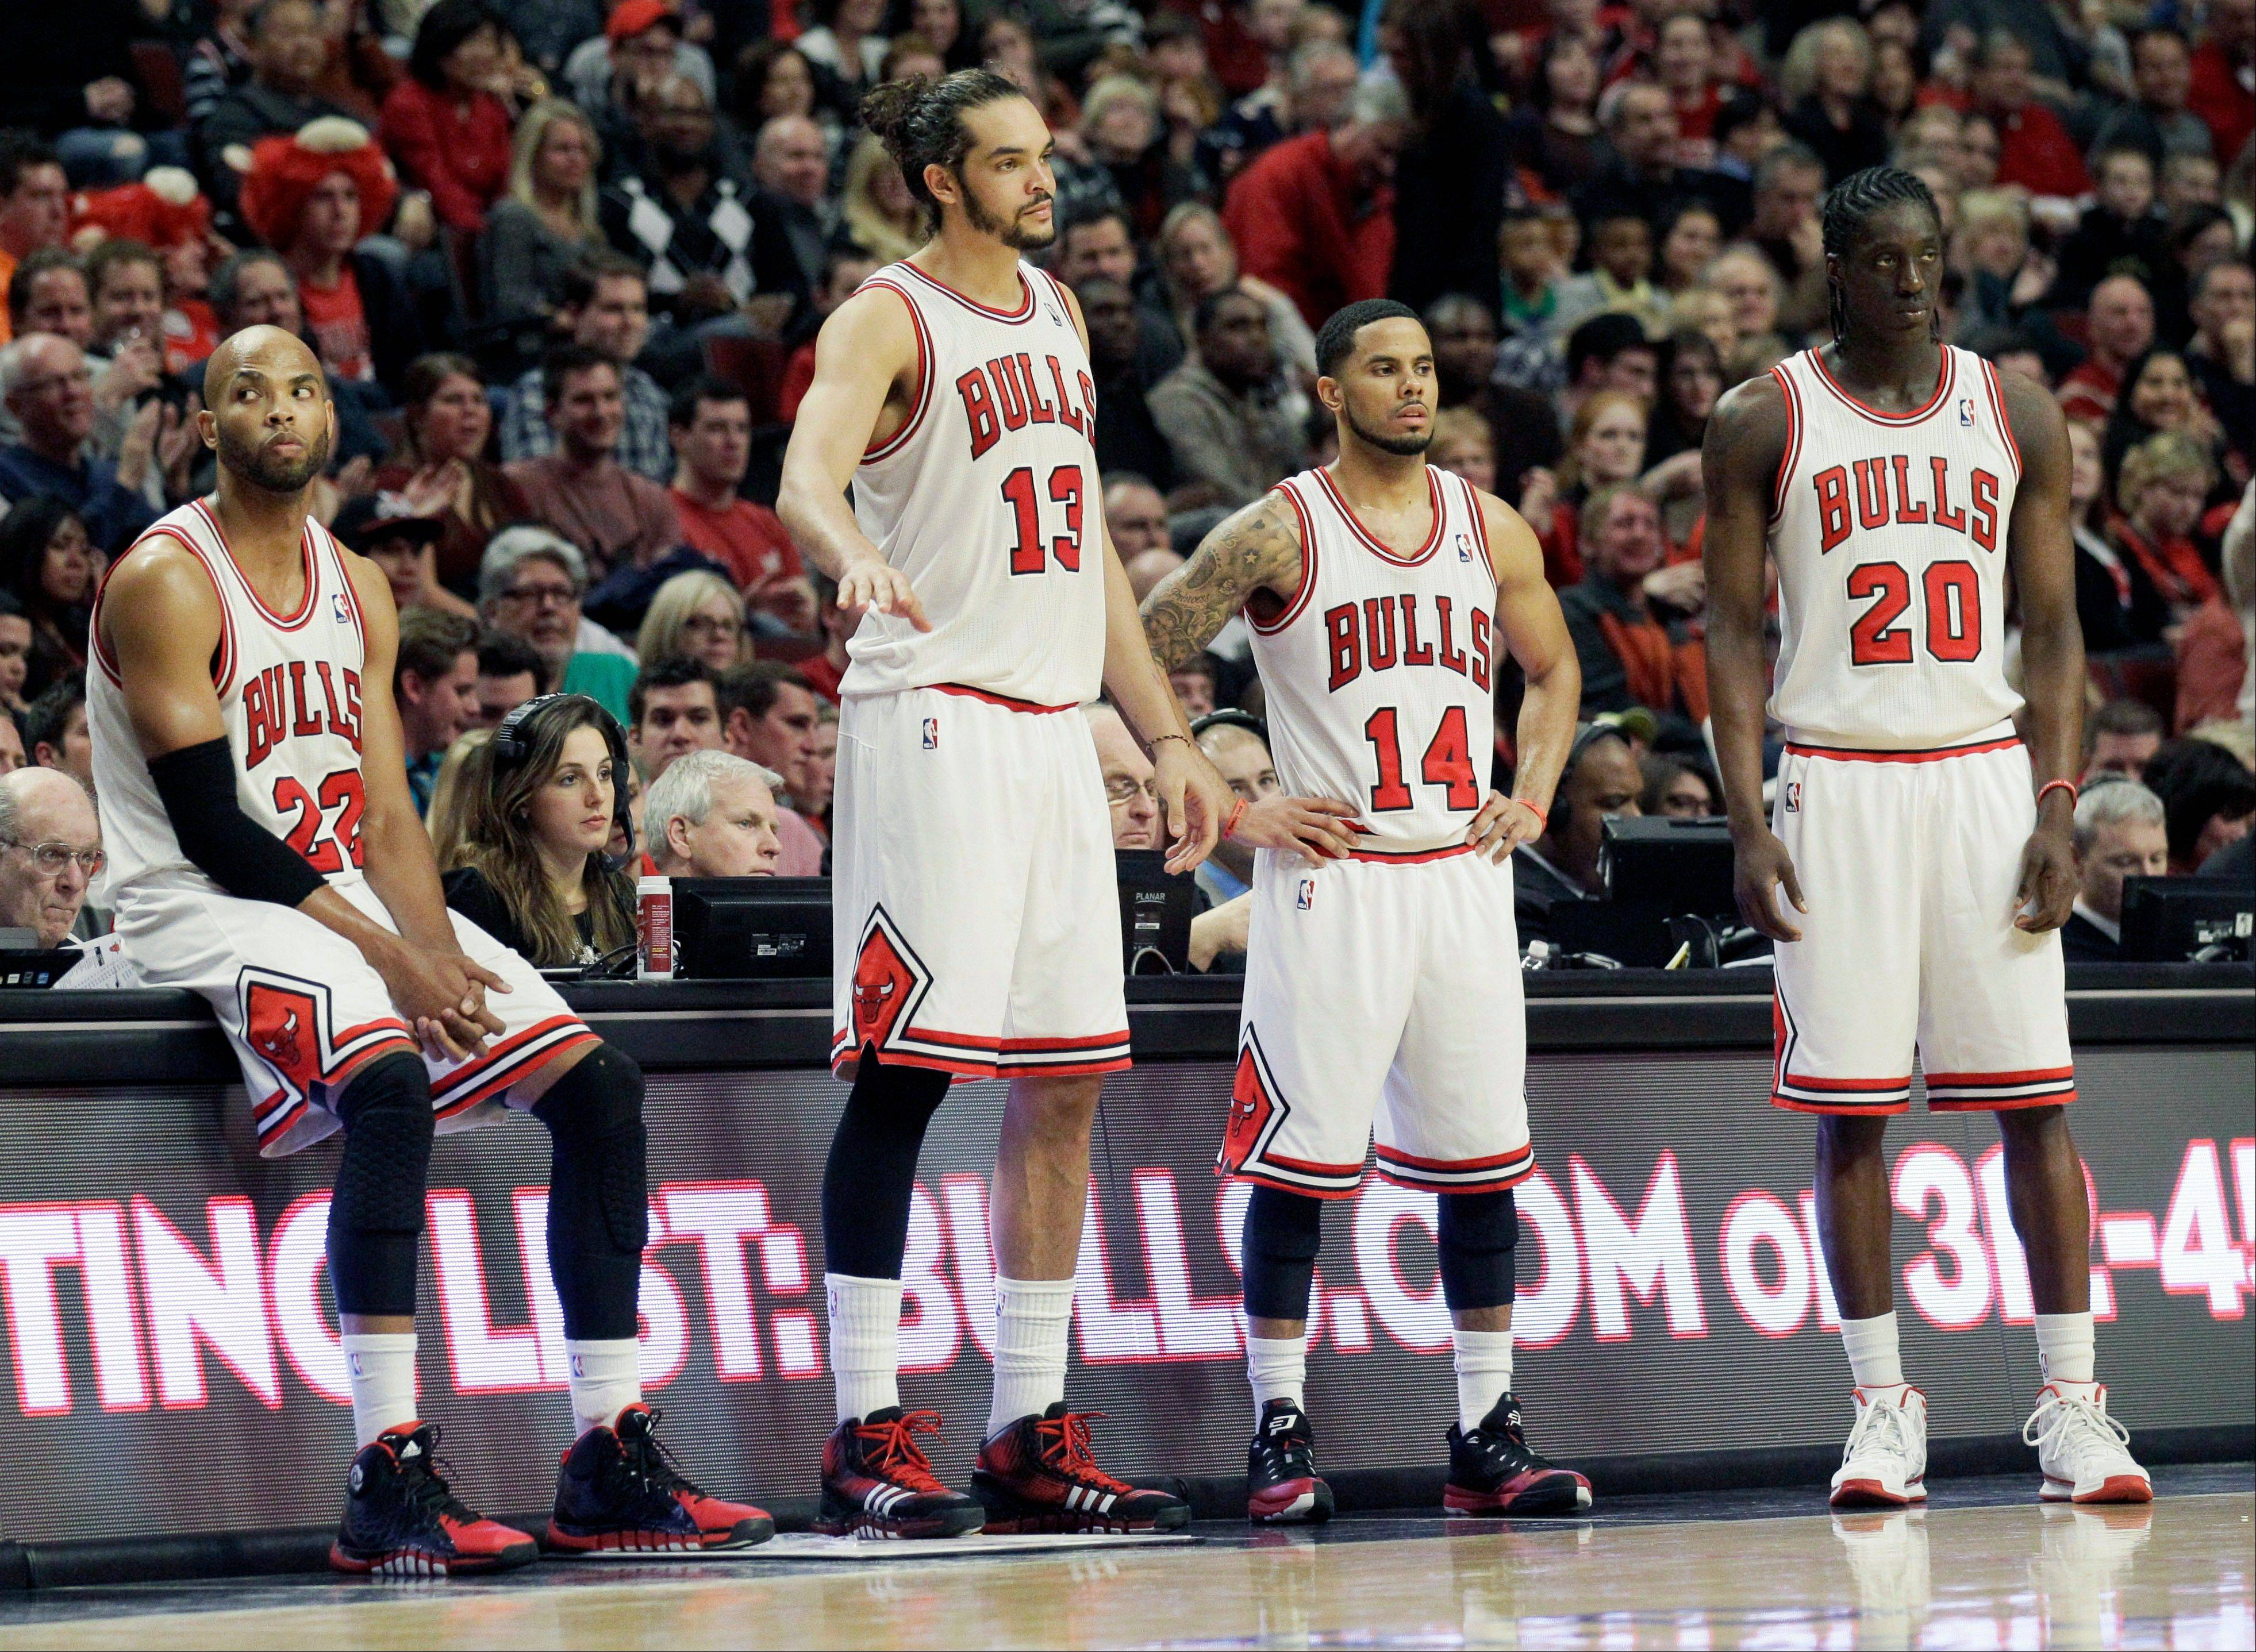 The Bulls� Taj Gibson, from left, Joakim Noah, D.J. Augustin and Tony Snell react to just how bad things were going in Saturday night�s loss to the Dallas Mavericks.